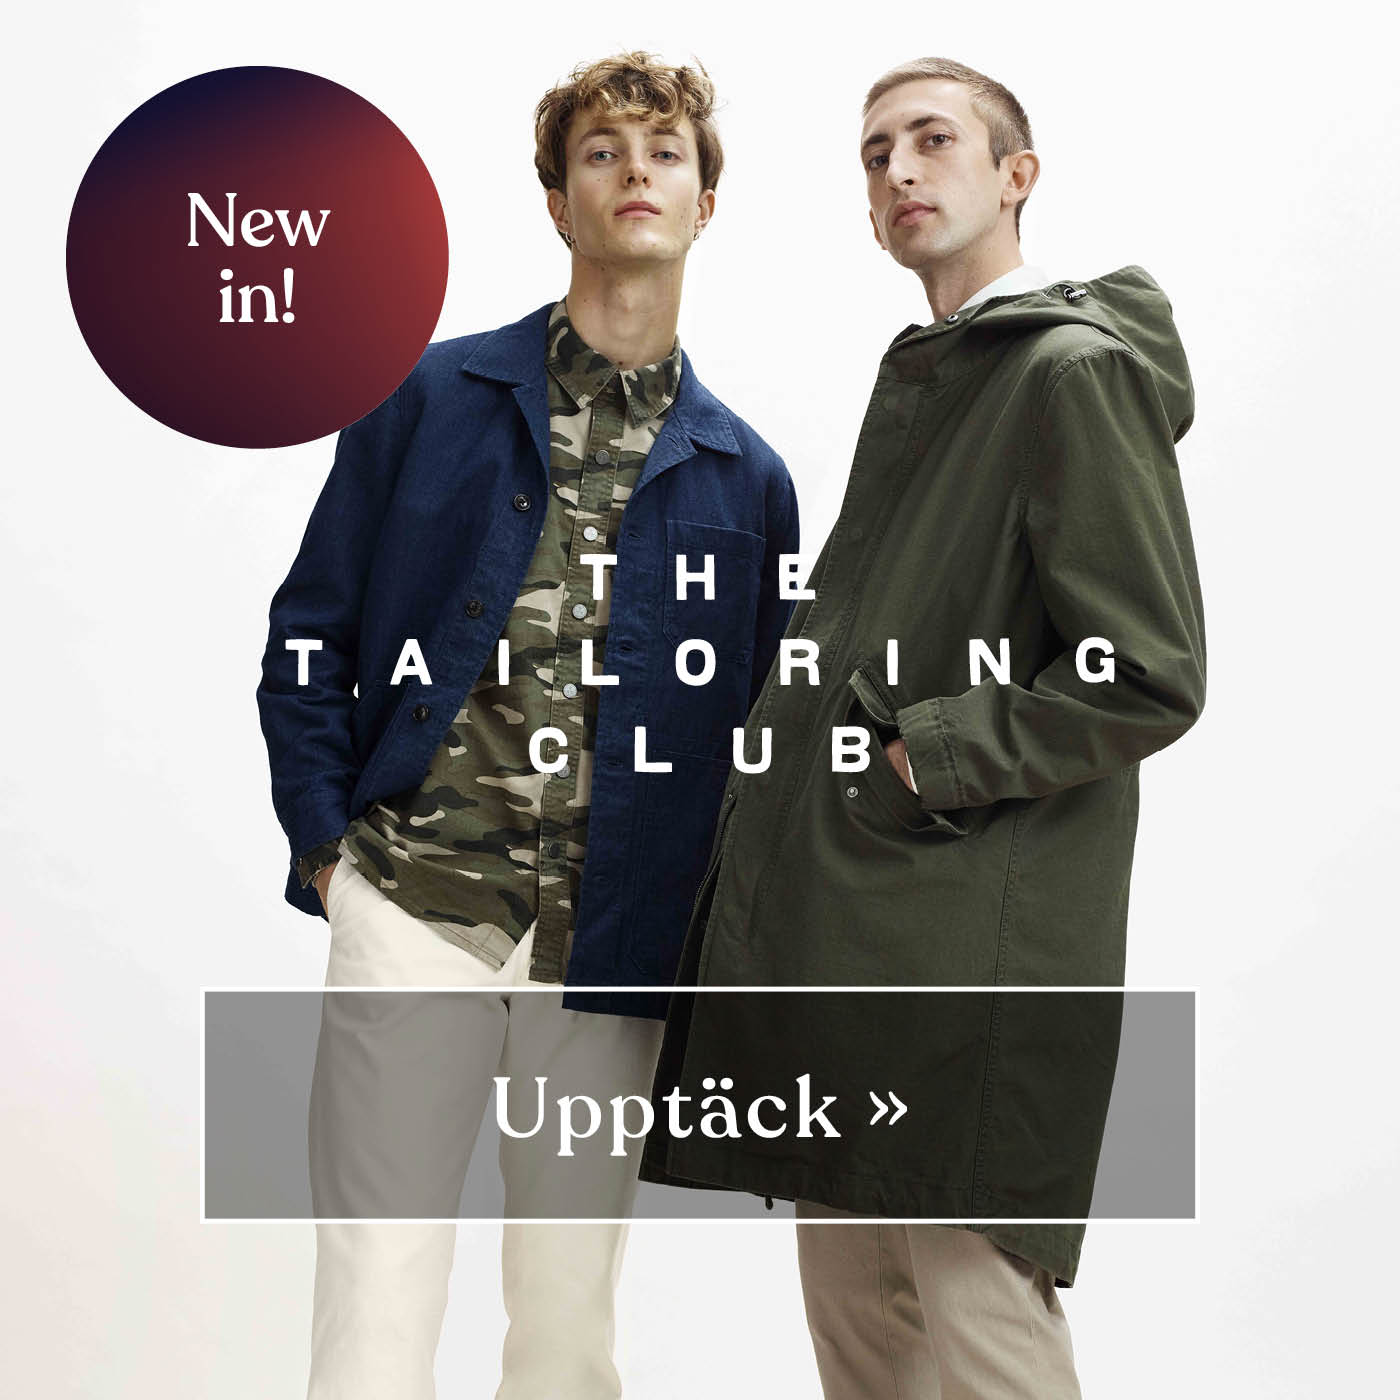 The Tailoring Club - new in!